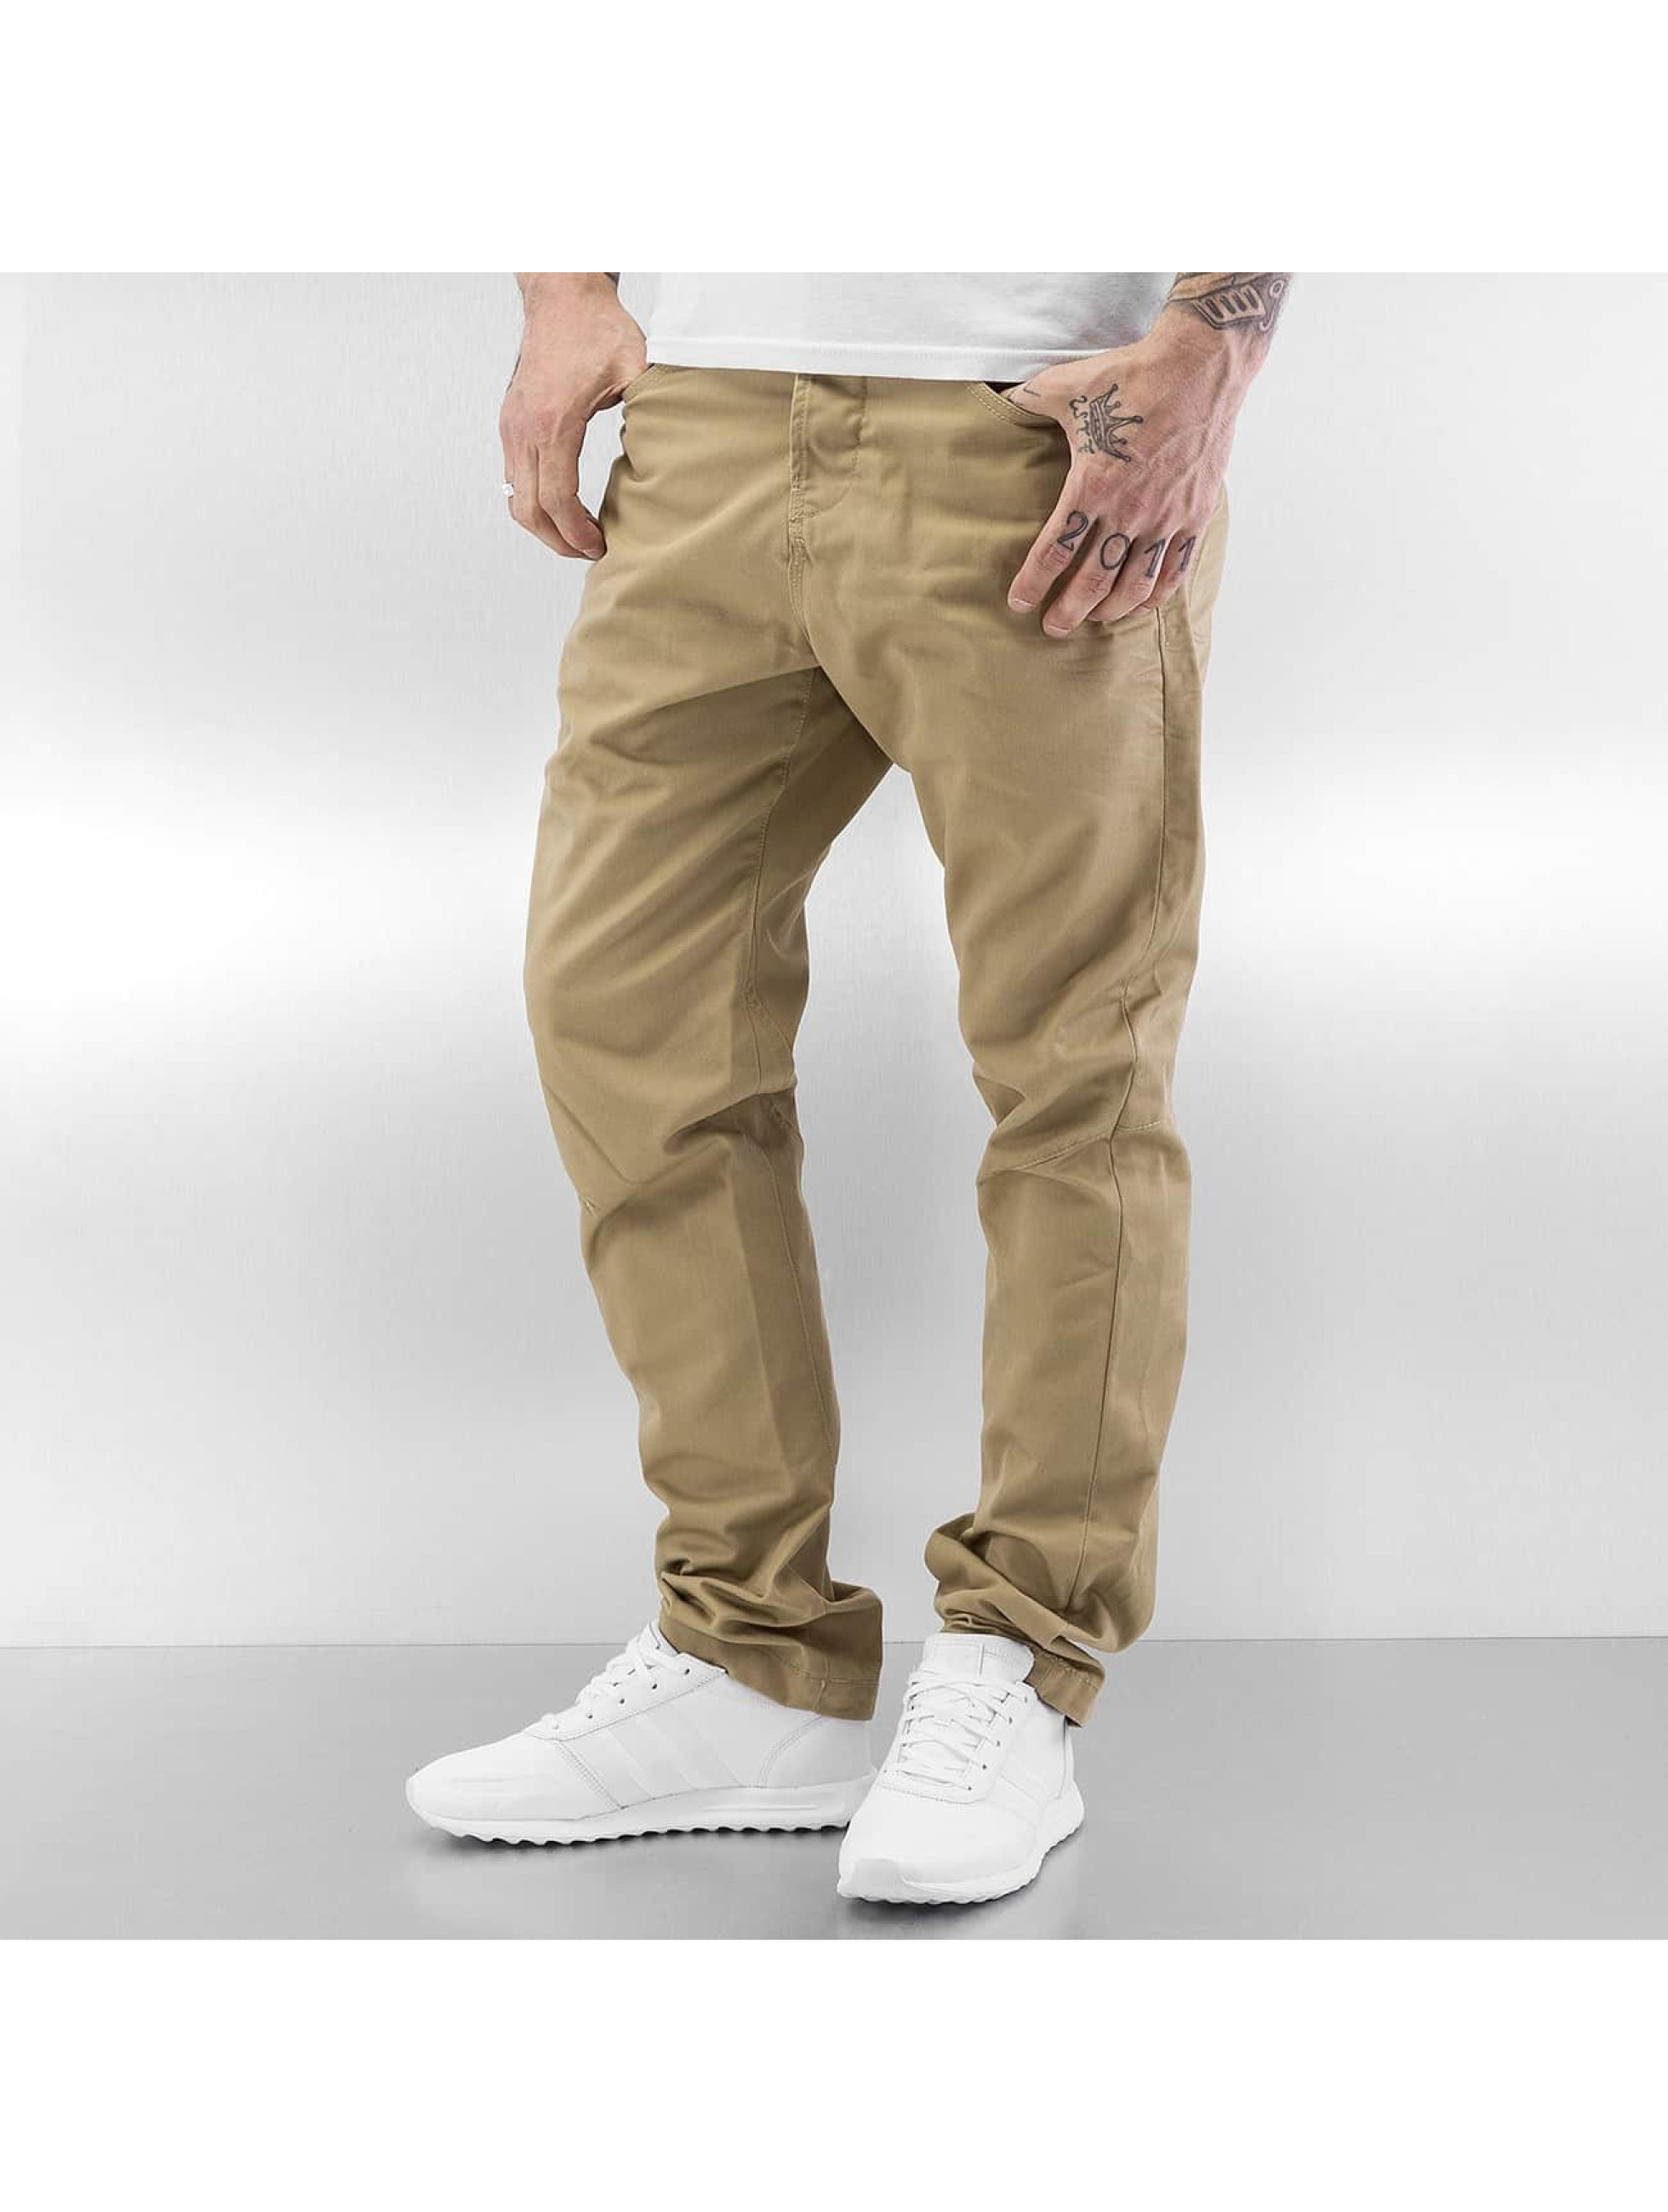 Jack & Jones Hose / Chino jjiStan jjiSac in beige